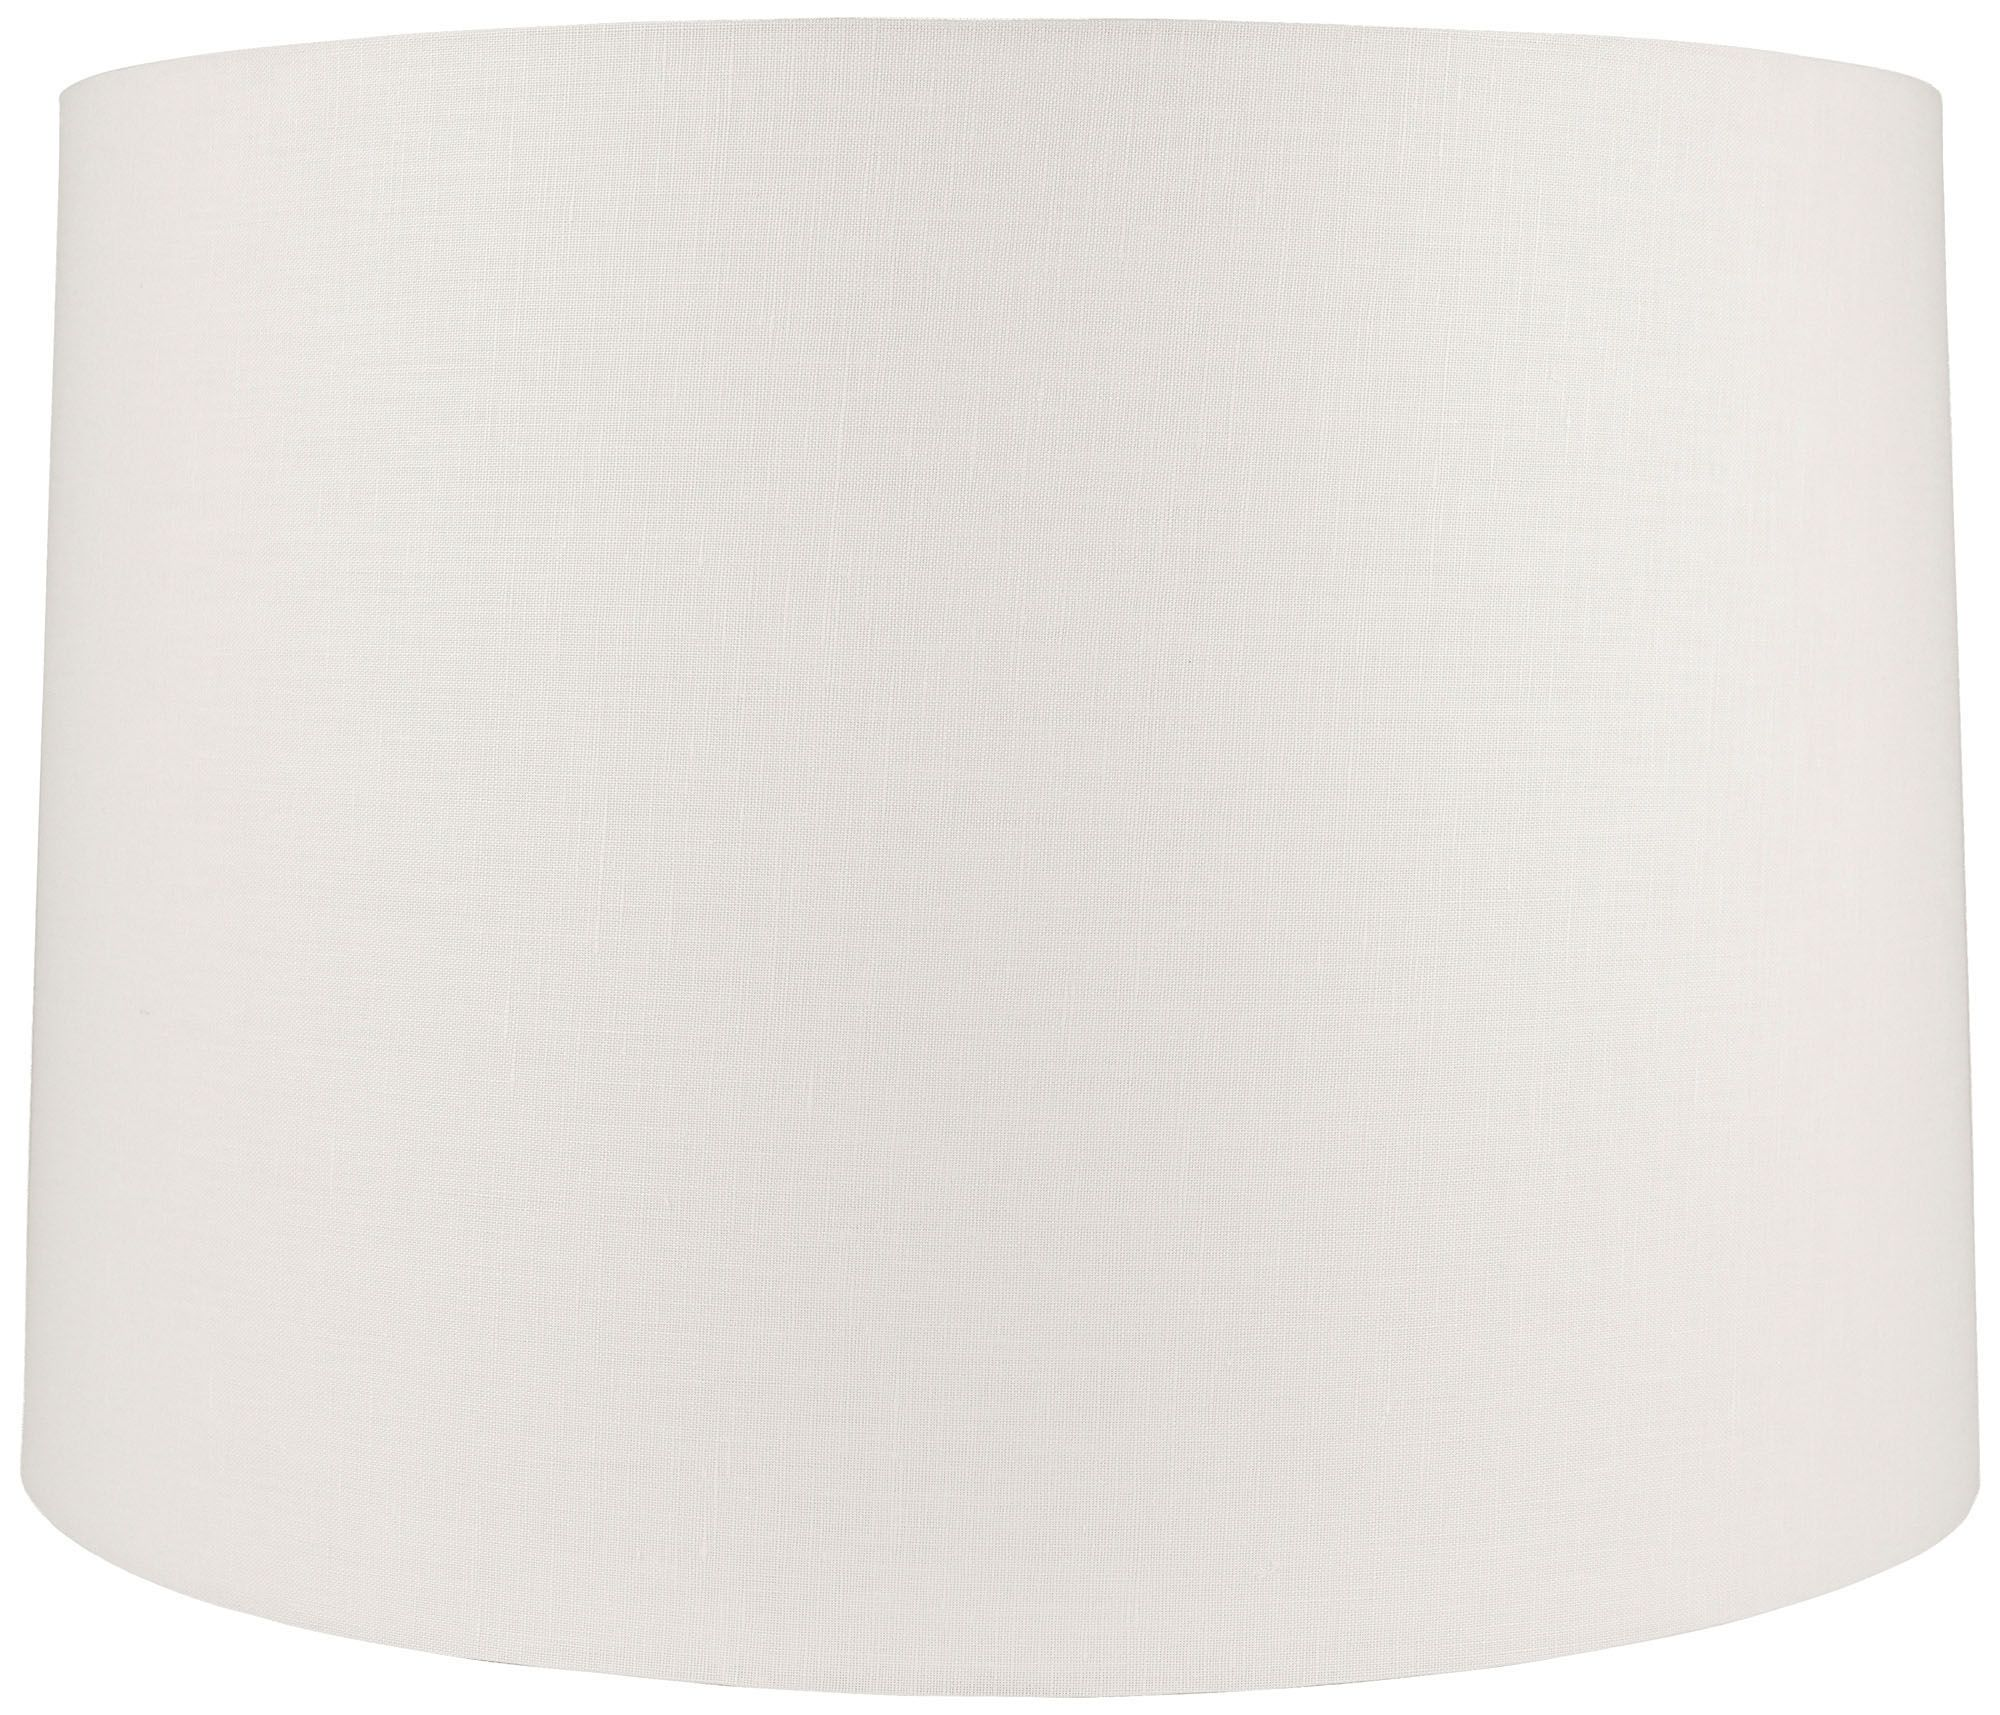 offwhite linen round drum shade 17x18x12 spider - Drum Shade